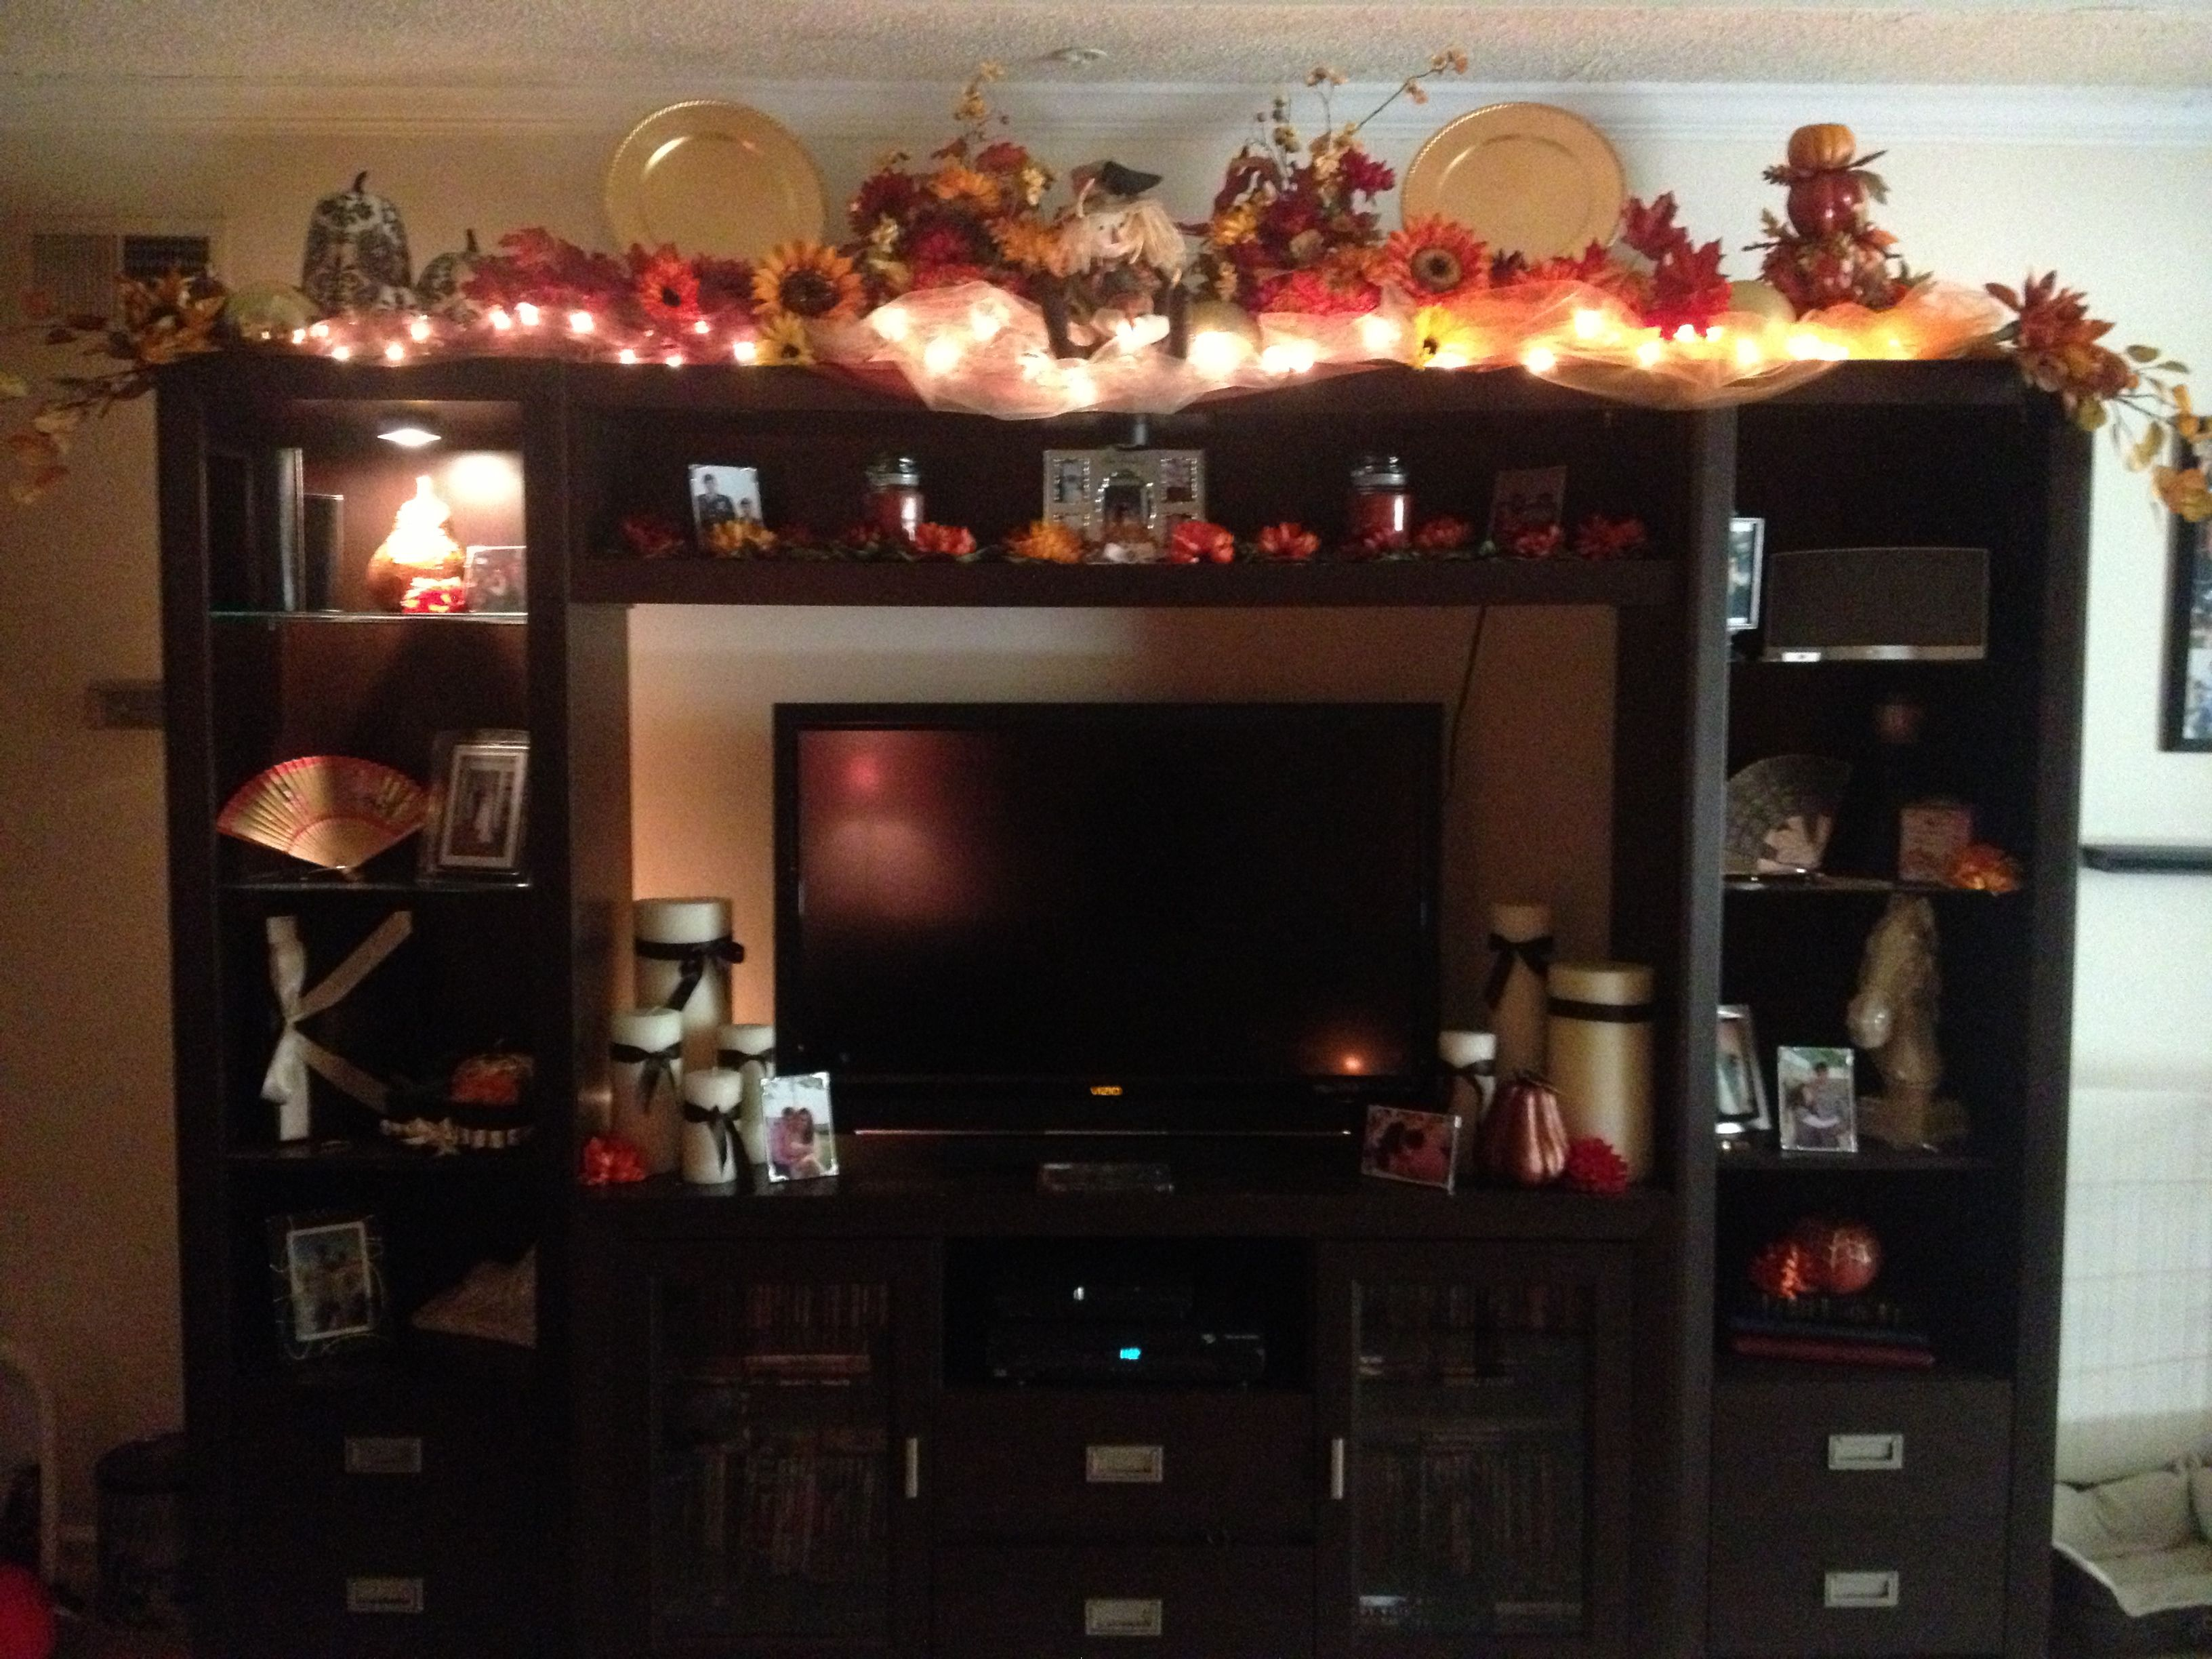 Festive Seasonholiday Decor For Top Of Entertainment Center For